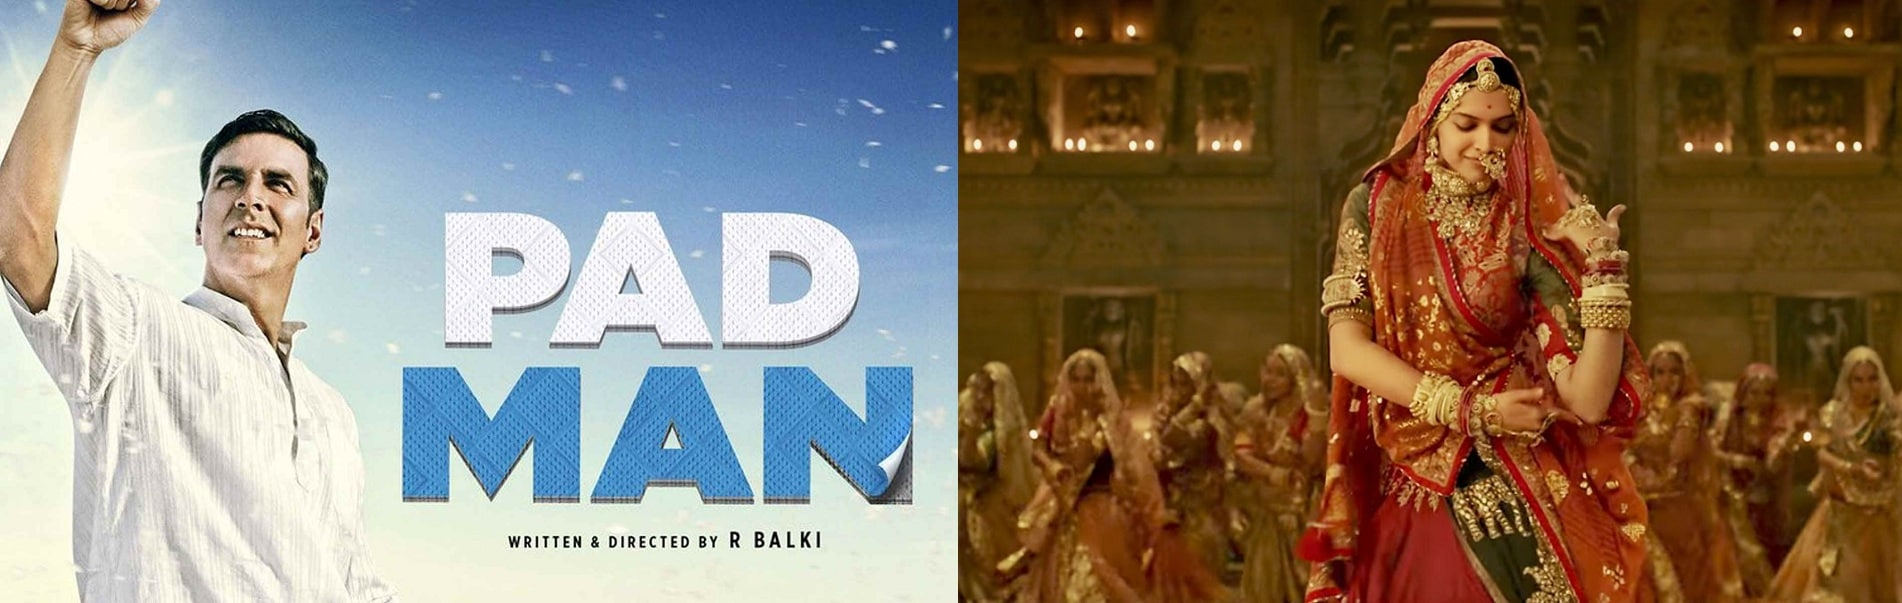 Padman release date pushed to 9 February; Padmaavat to enjoy solo release on 25 January